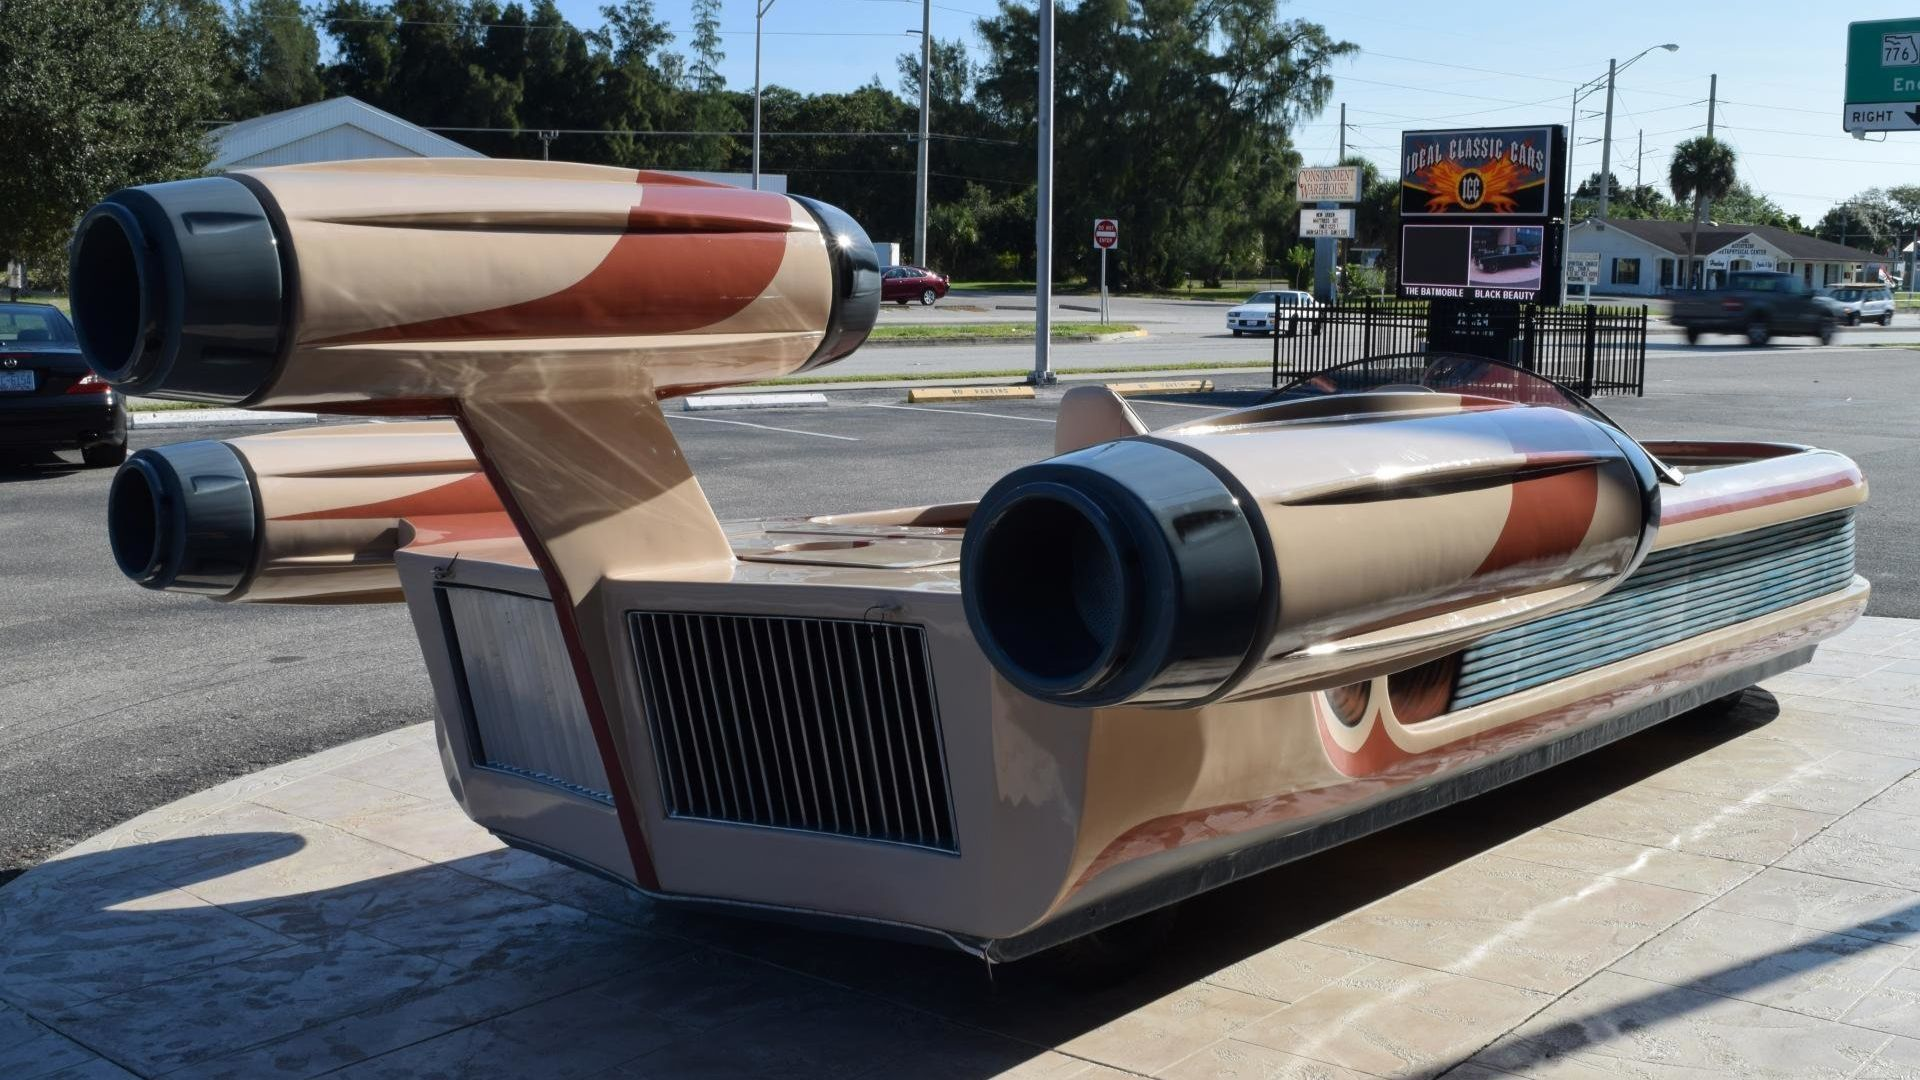 Celebrate May The 4th With A Star Wars X-34 Landspeeder